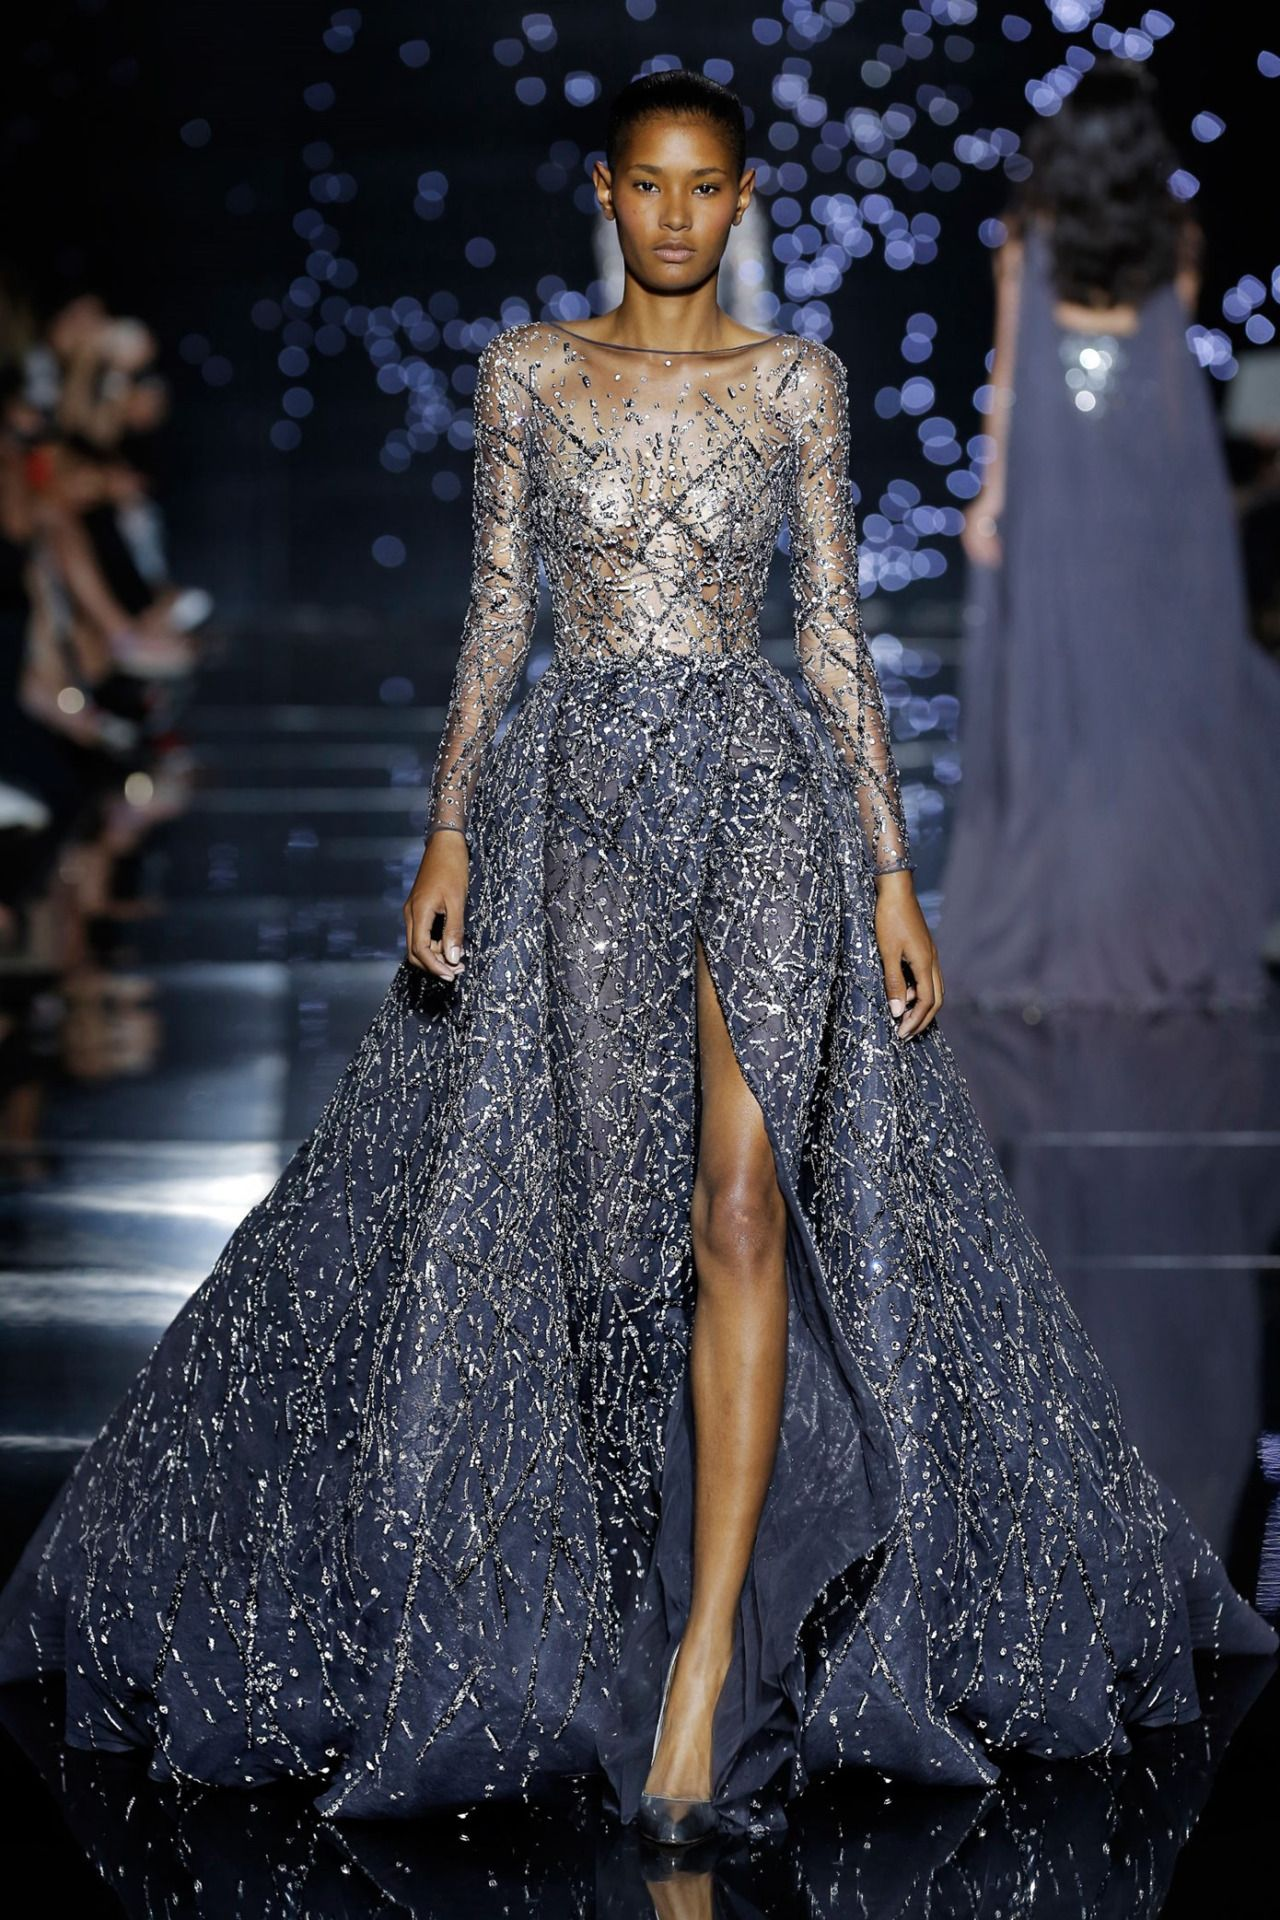 Blue dress zuhair murad design